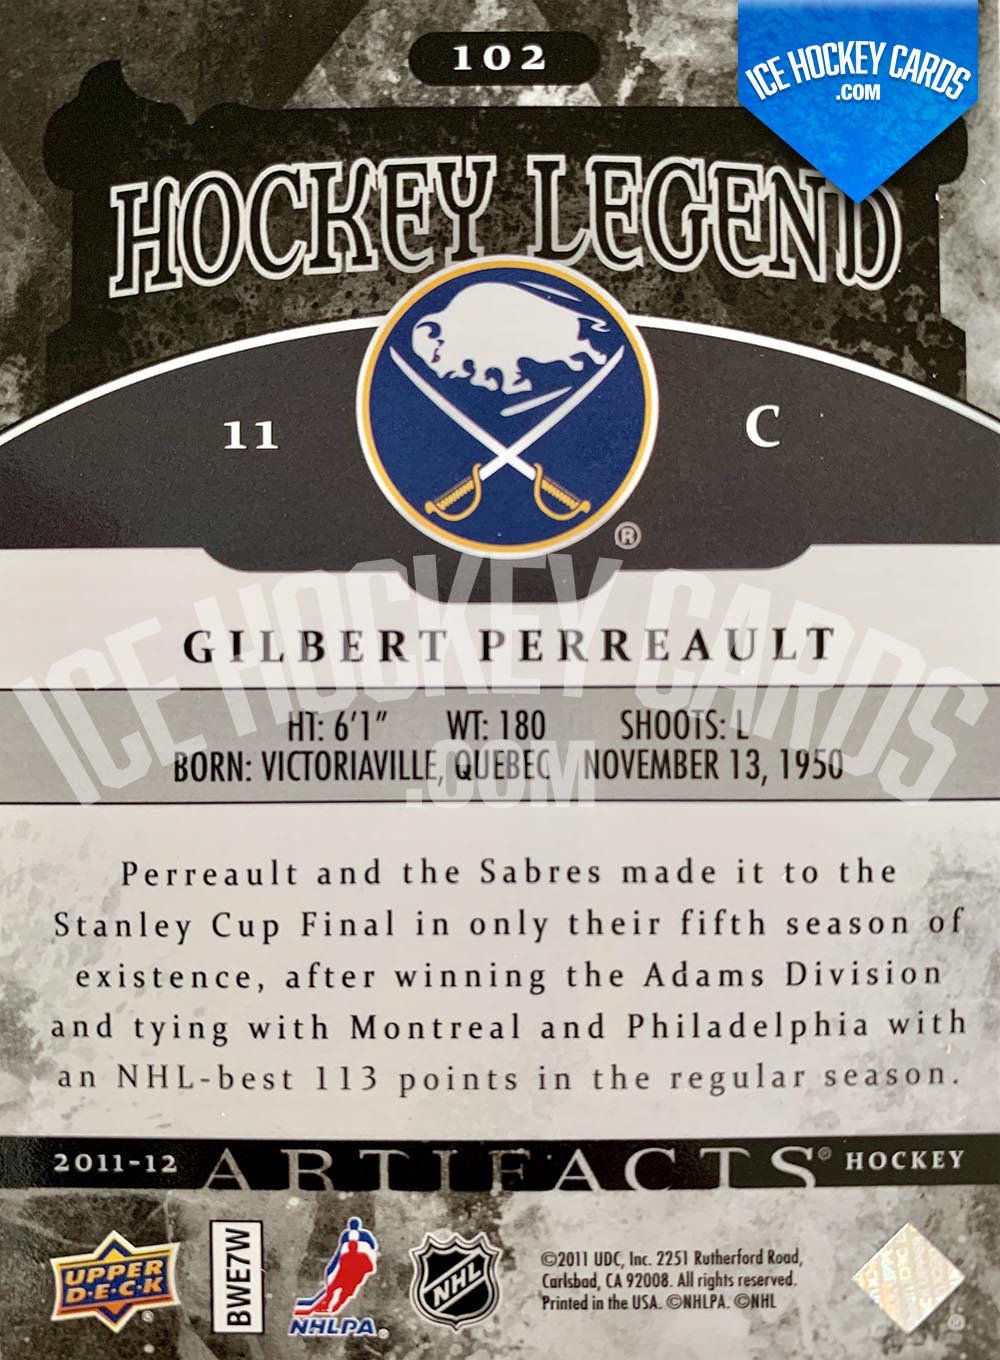 Upper Deck - Artifacts 2011-12 - Gilbert Perreault Hockey Legend back